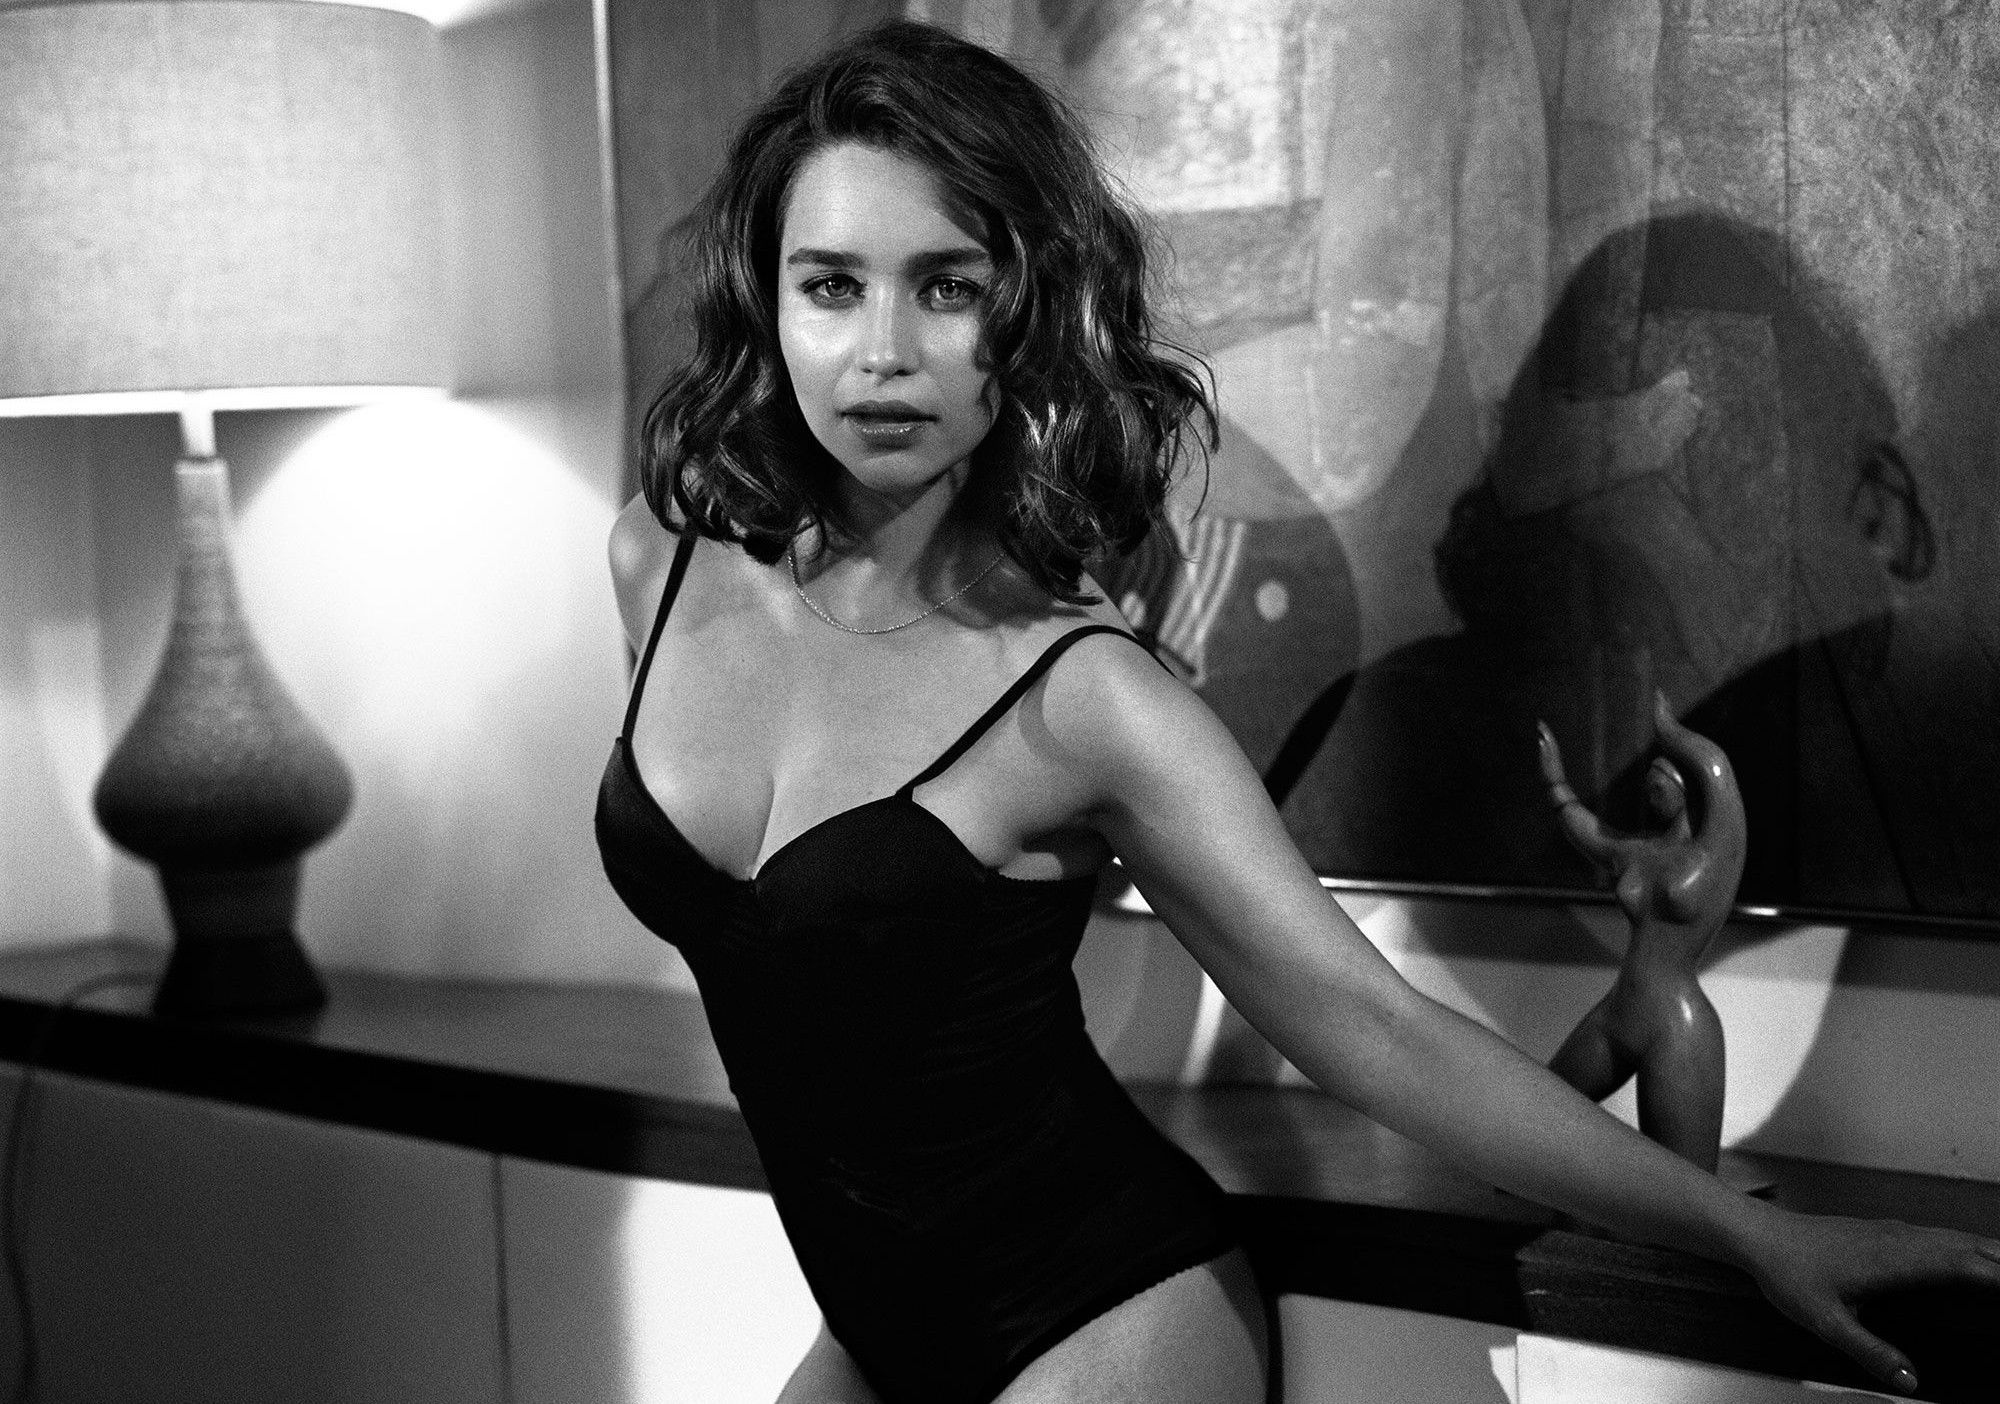 Emilia Clarke Hot Wallpapers 90 Wallpapers Hd Wallpapers Emilia Clarke Hot Emilia Clarke Emelia Clarke